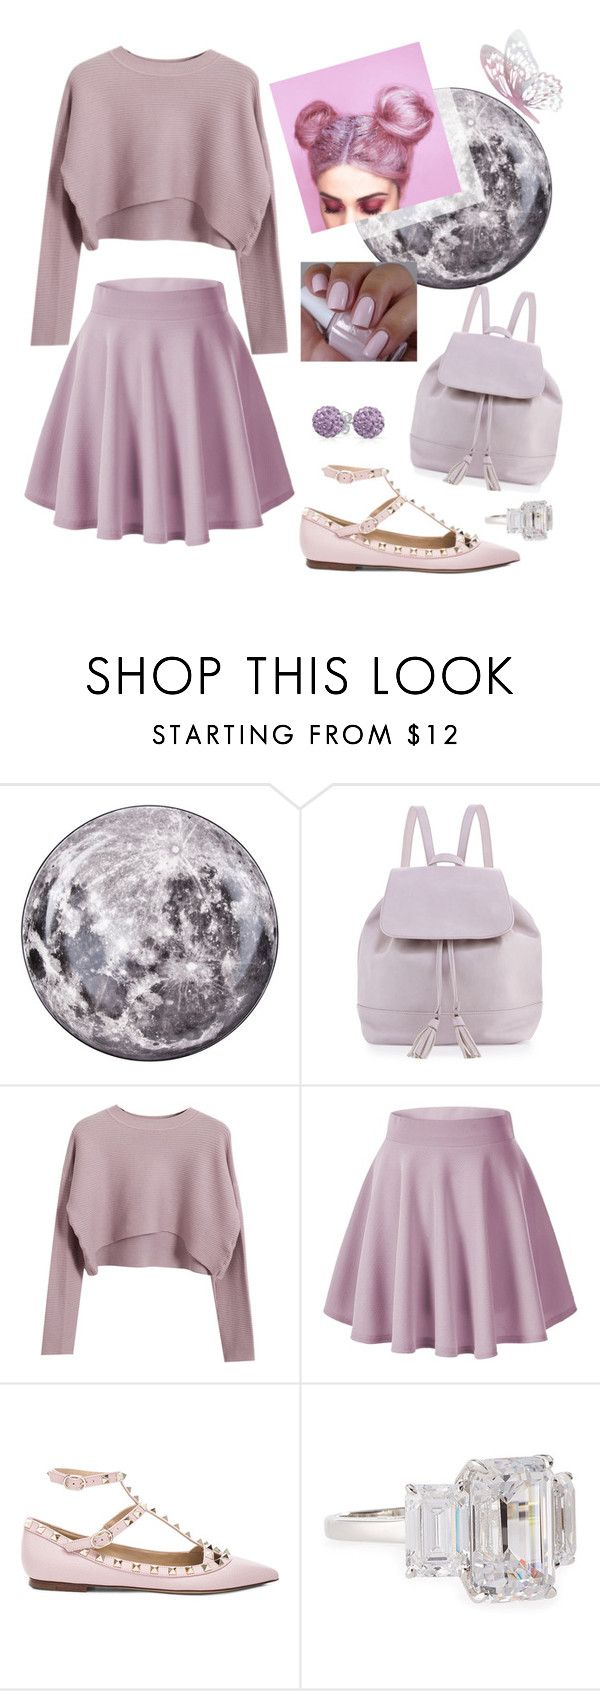 """""""Back To School ; Lavande"""" by mgldemartino ❤ liked on Polyvore featuring Seletti, Neiman Marcus, Chicnova Fashion, Valentino, Fantasia by DeSerio, Bling Jewelry, BackToSchool, valentino and lavande"""